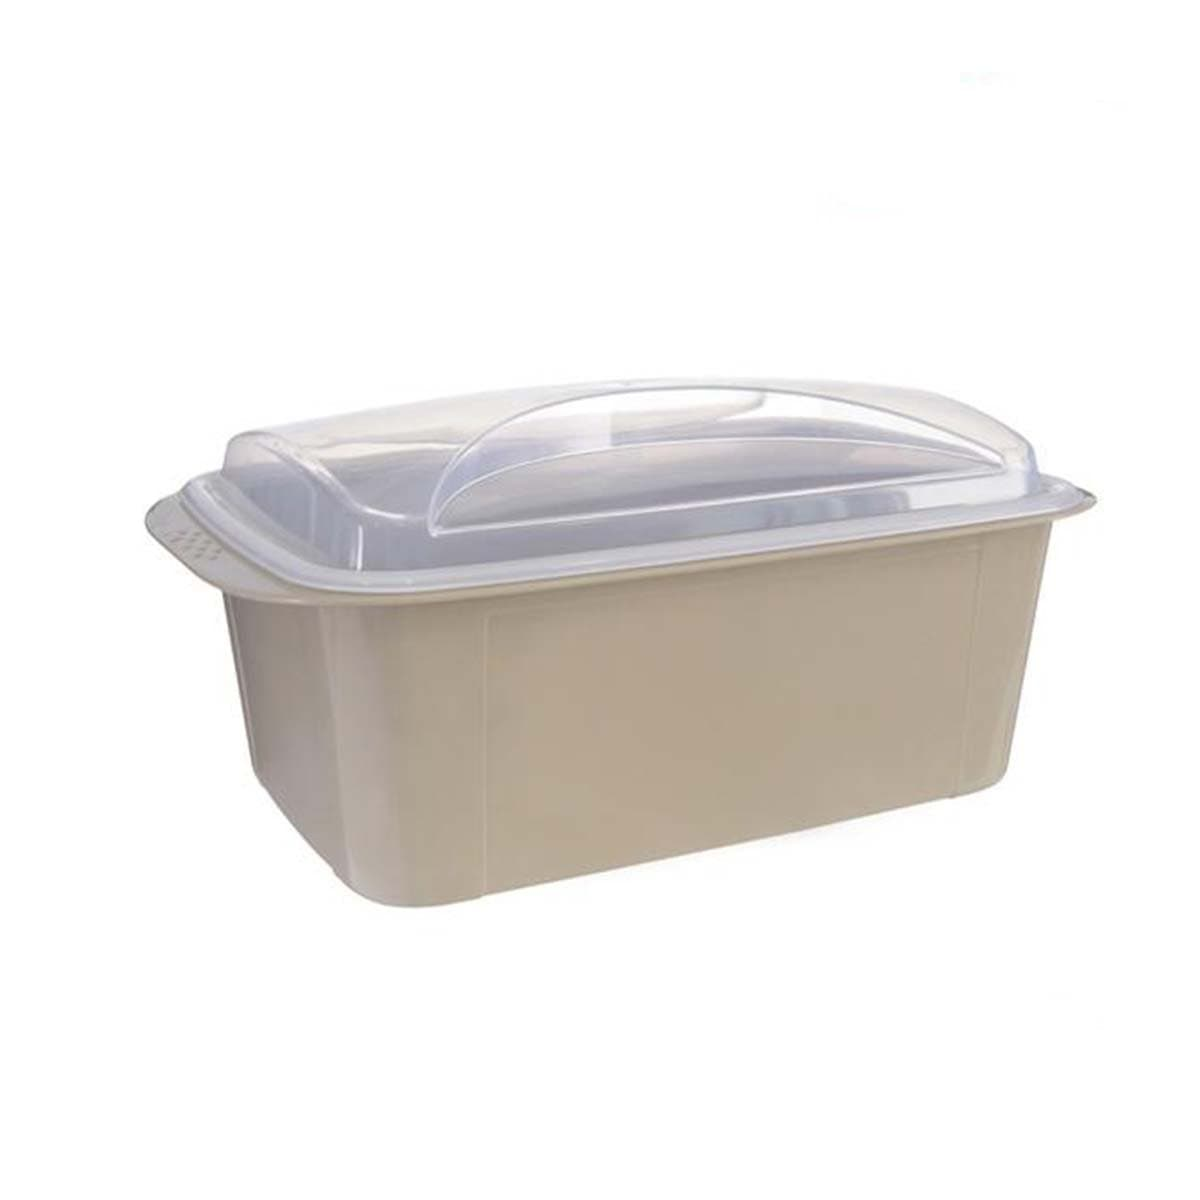 0304 MULTI PURPOSE CONTAINER 10L (Random Color)